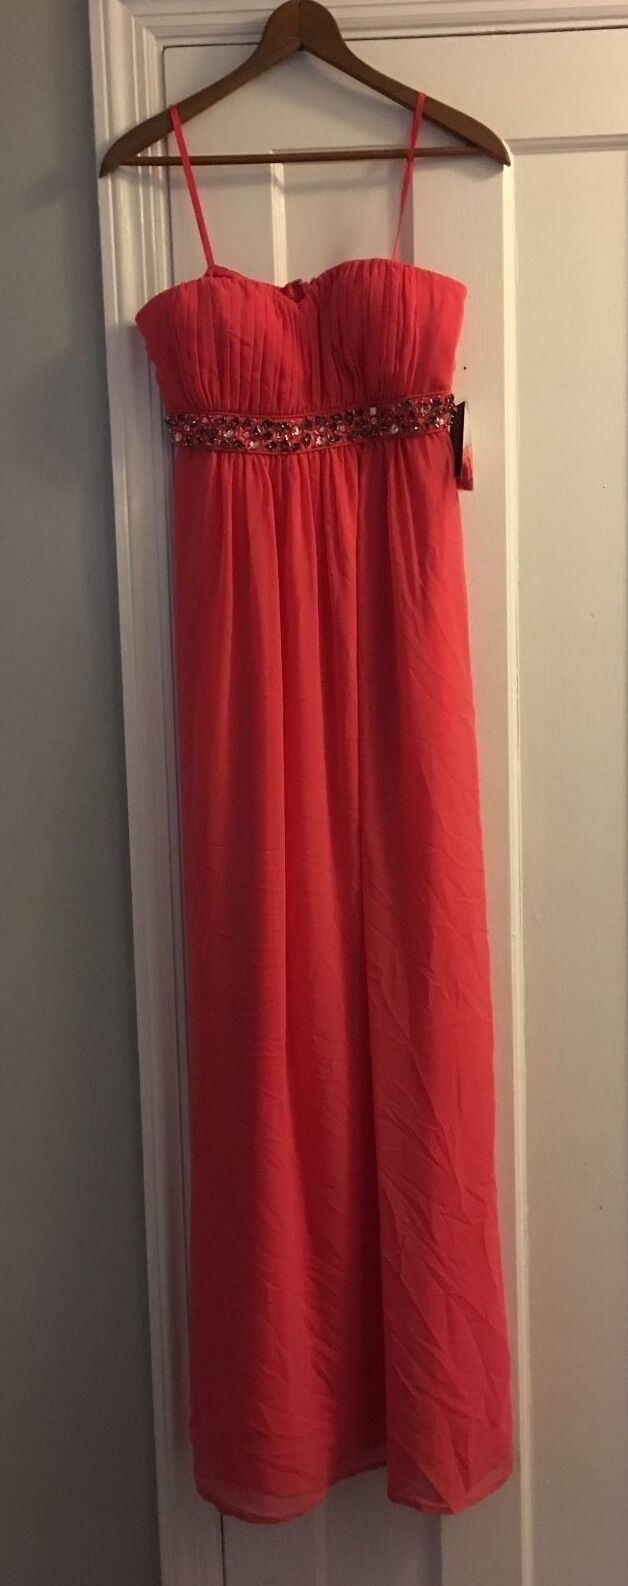 Jessica Simpson Sz 4 NEW w Tag Paradise Pink Formal Strapless Beaded Sexy Dress